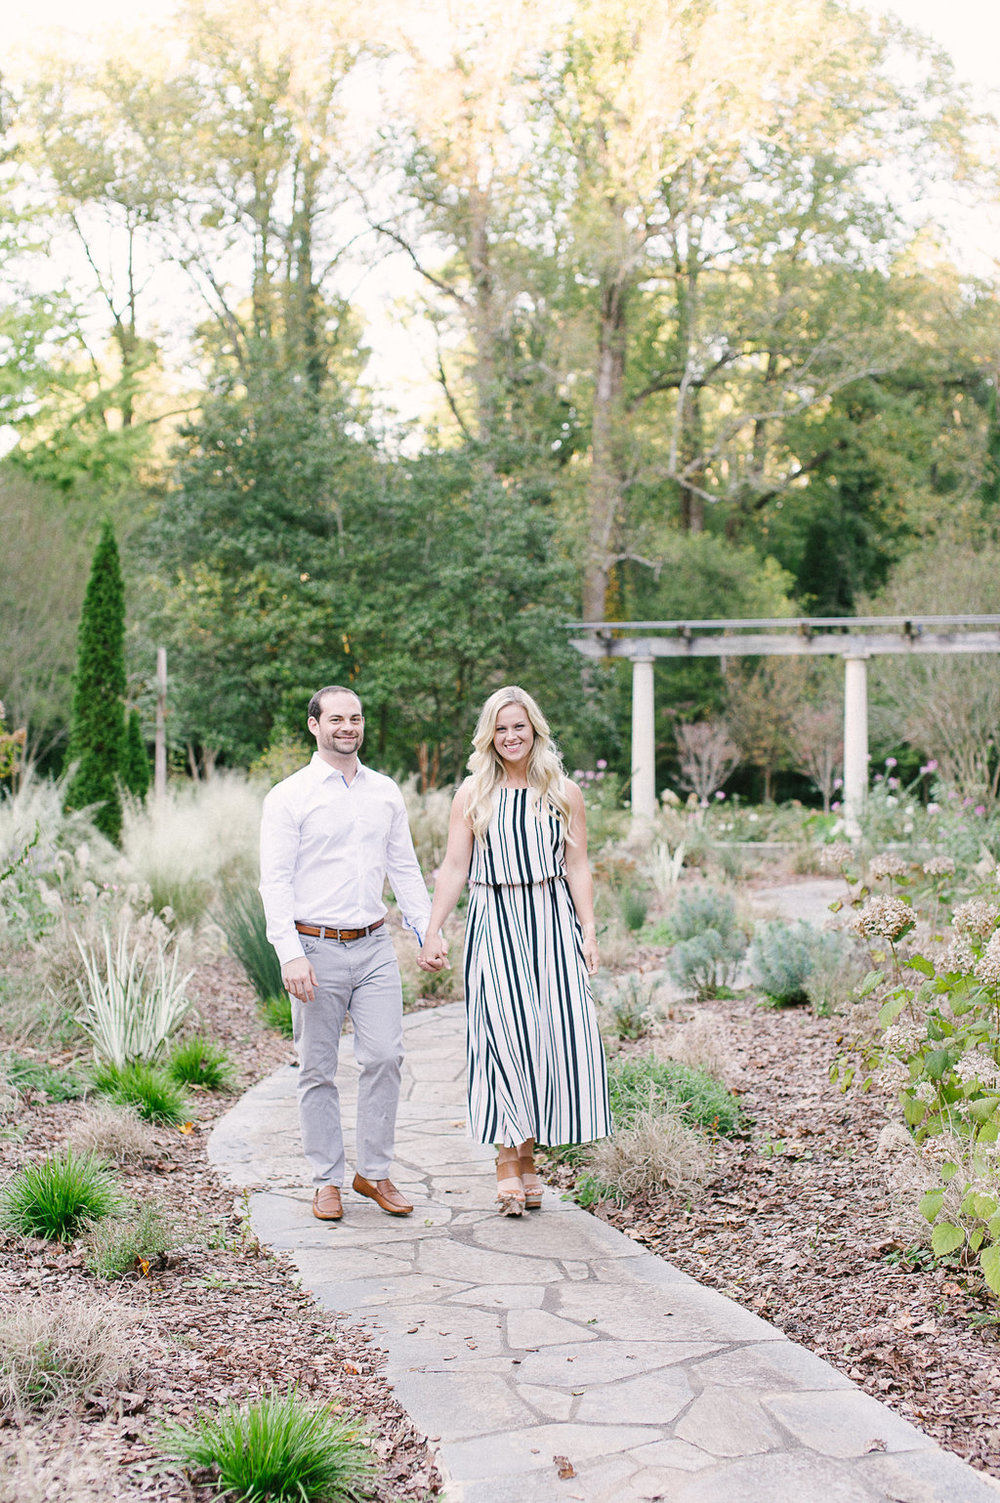 Cator-Woolford-Gardens-Engagement-atlanta-wedding-photographer-hannah-forsberg-9.jpg